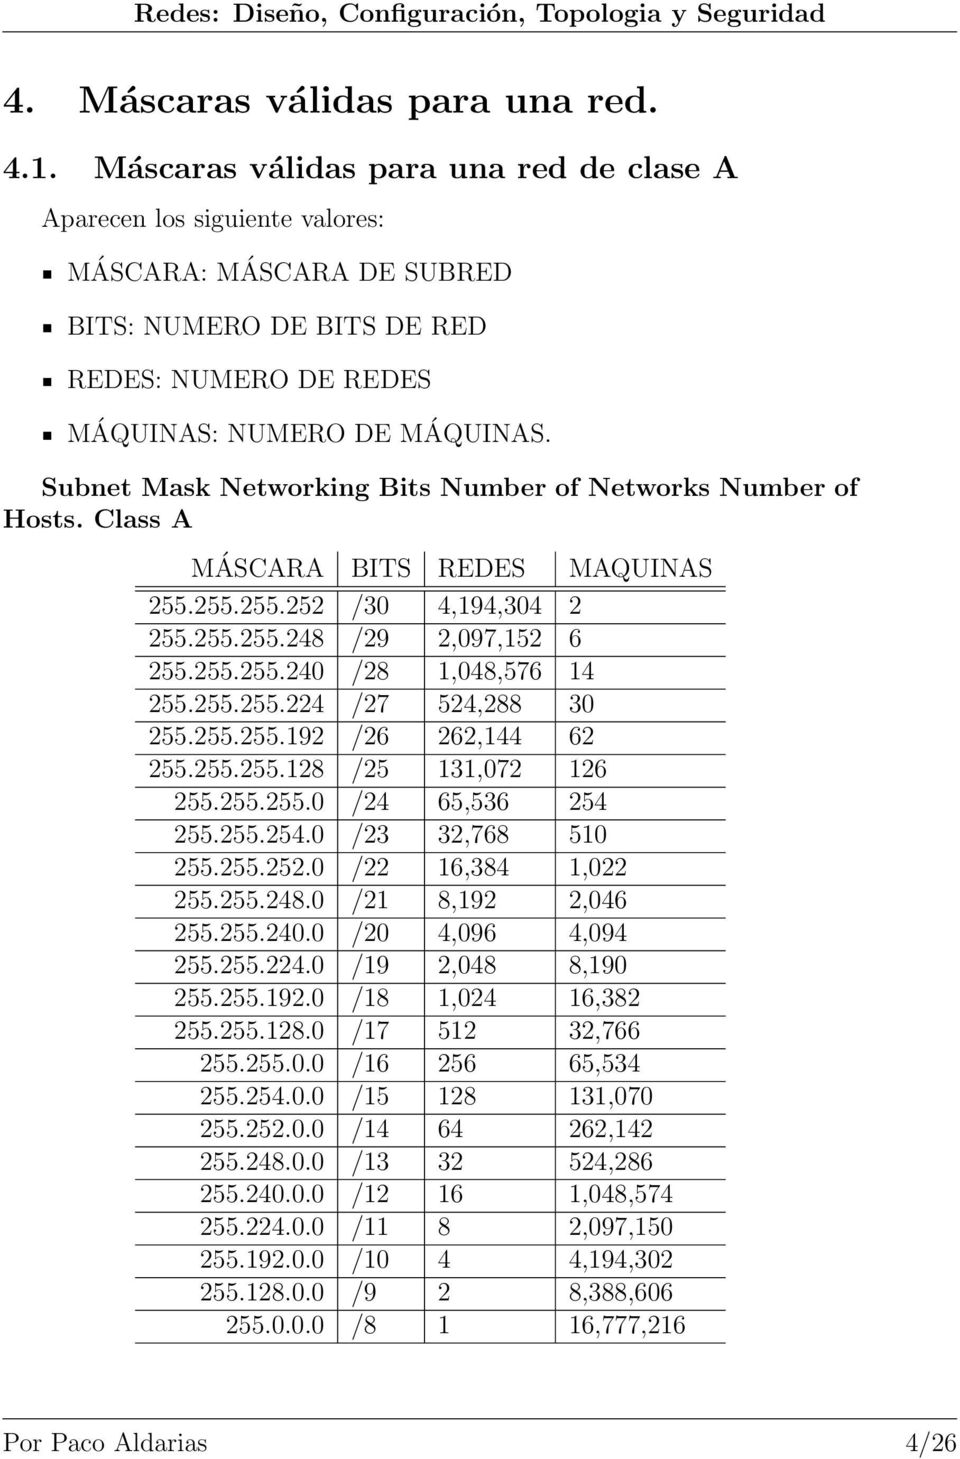 Subnet Mask Networking Bits Number of Networks Number of Hosts. Class A MÁSCARA BITS REDES MAQUINAS 255.255.255.252 /30 4,194,304 2 255.255.255.248 /29 2,097,152 6 255.255.255.240 /28 1,048,576 14 255.